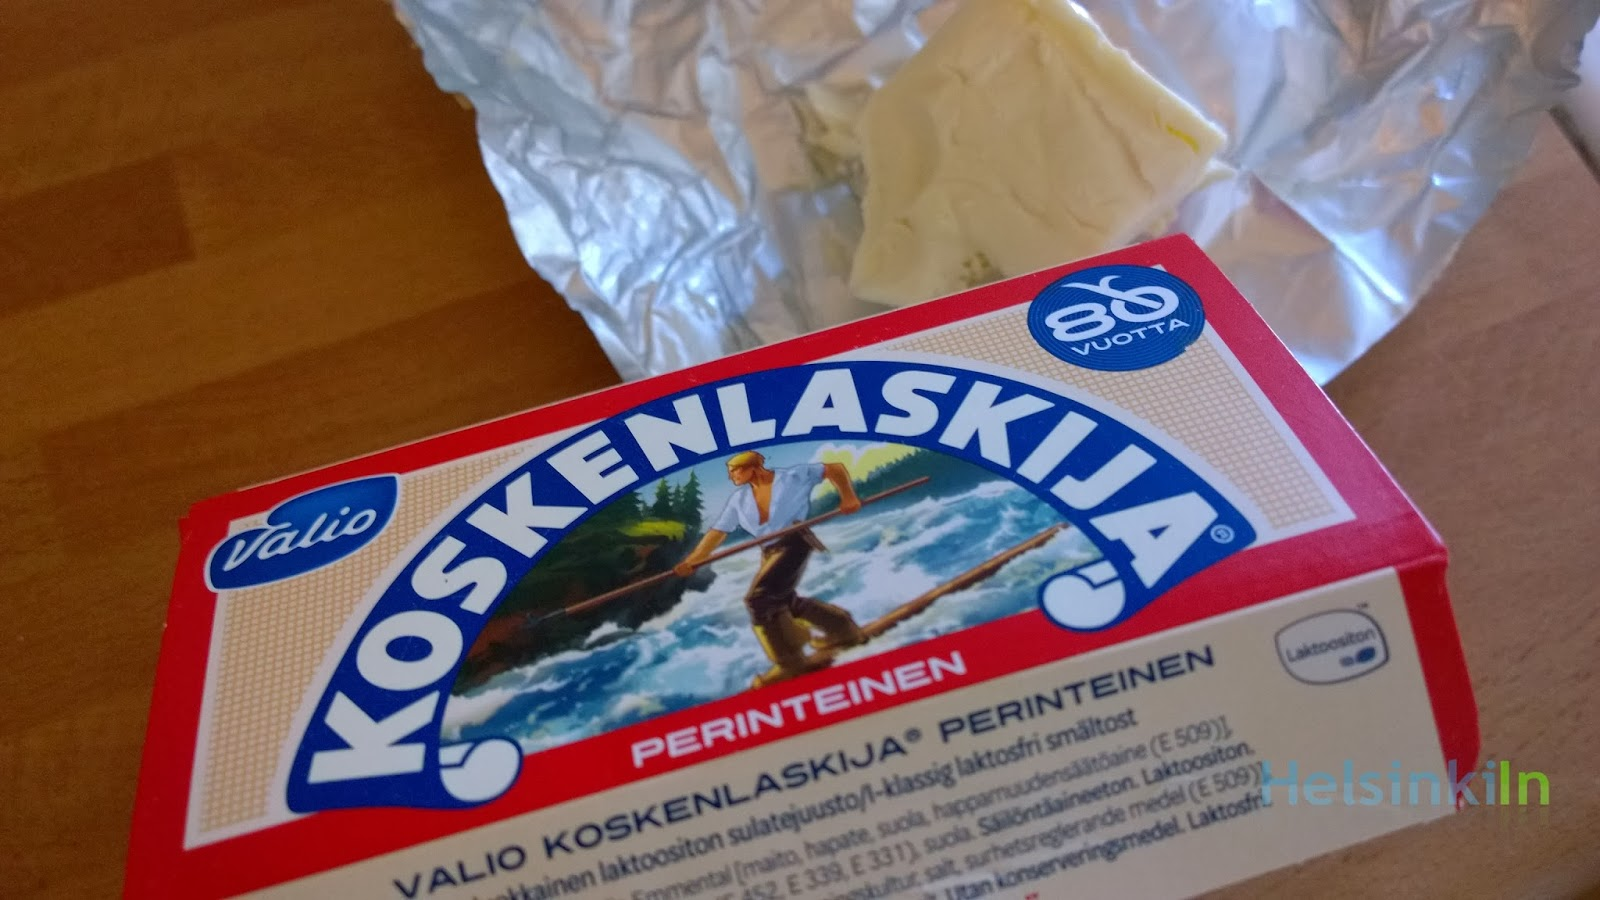 Koskenlaskia soft cheese